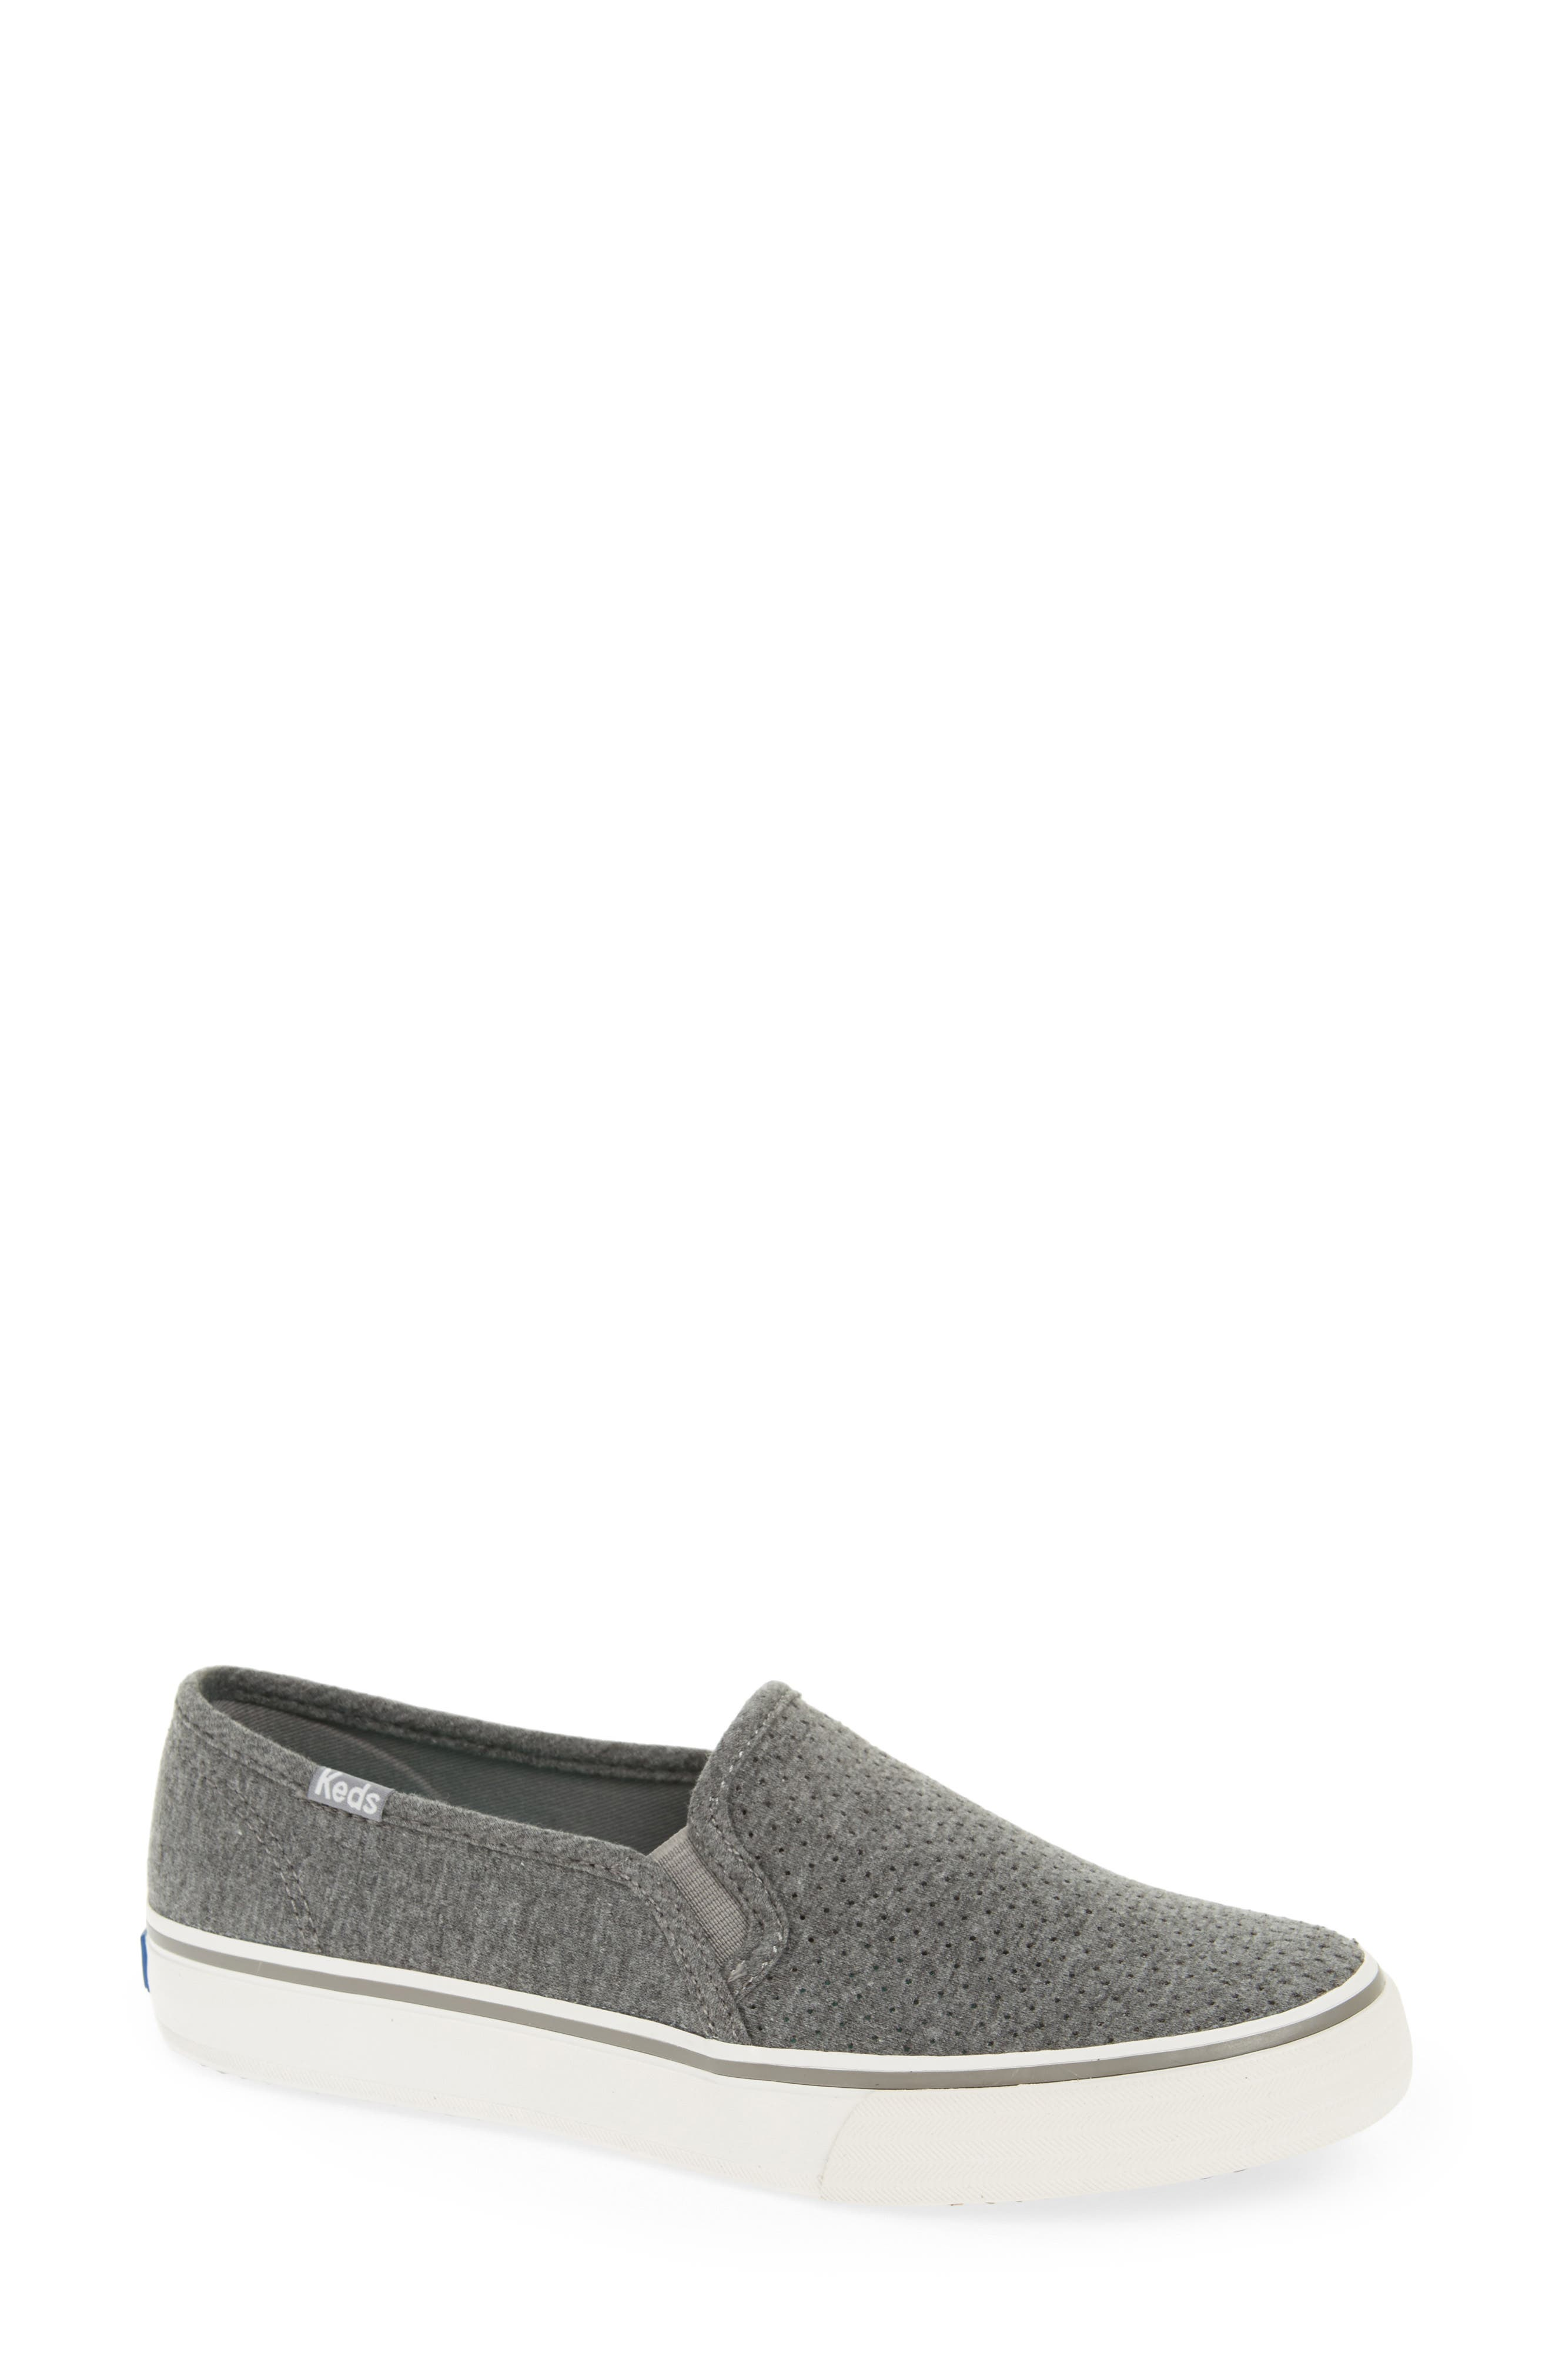 Double Decker Perforated Slip-On Sneaker,                         Main,                         color,